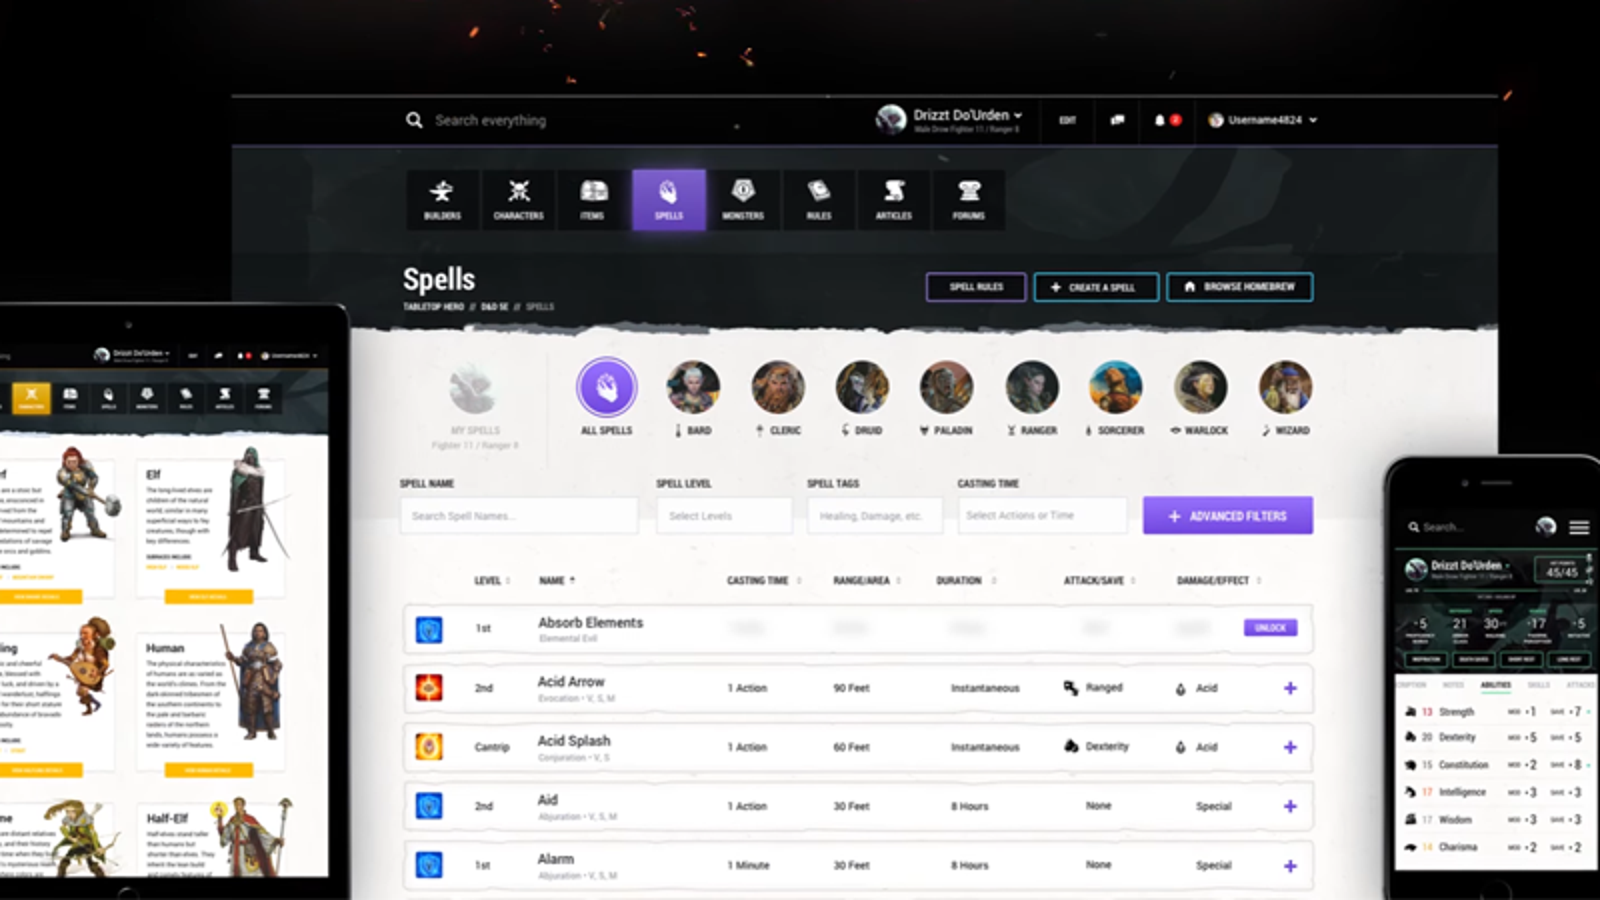 A New Dungeons & Dragons Companion App Will Help Declutter